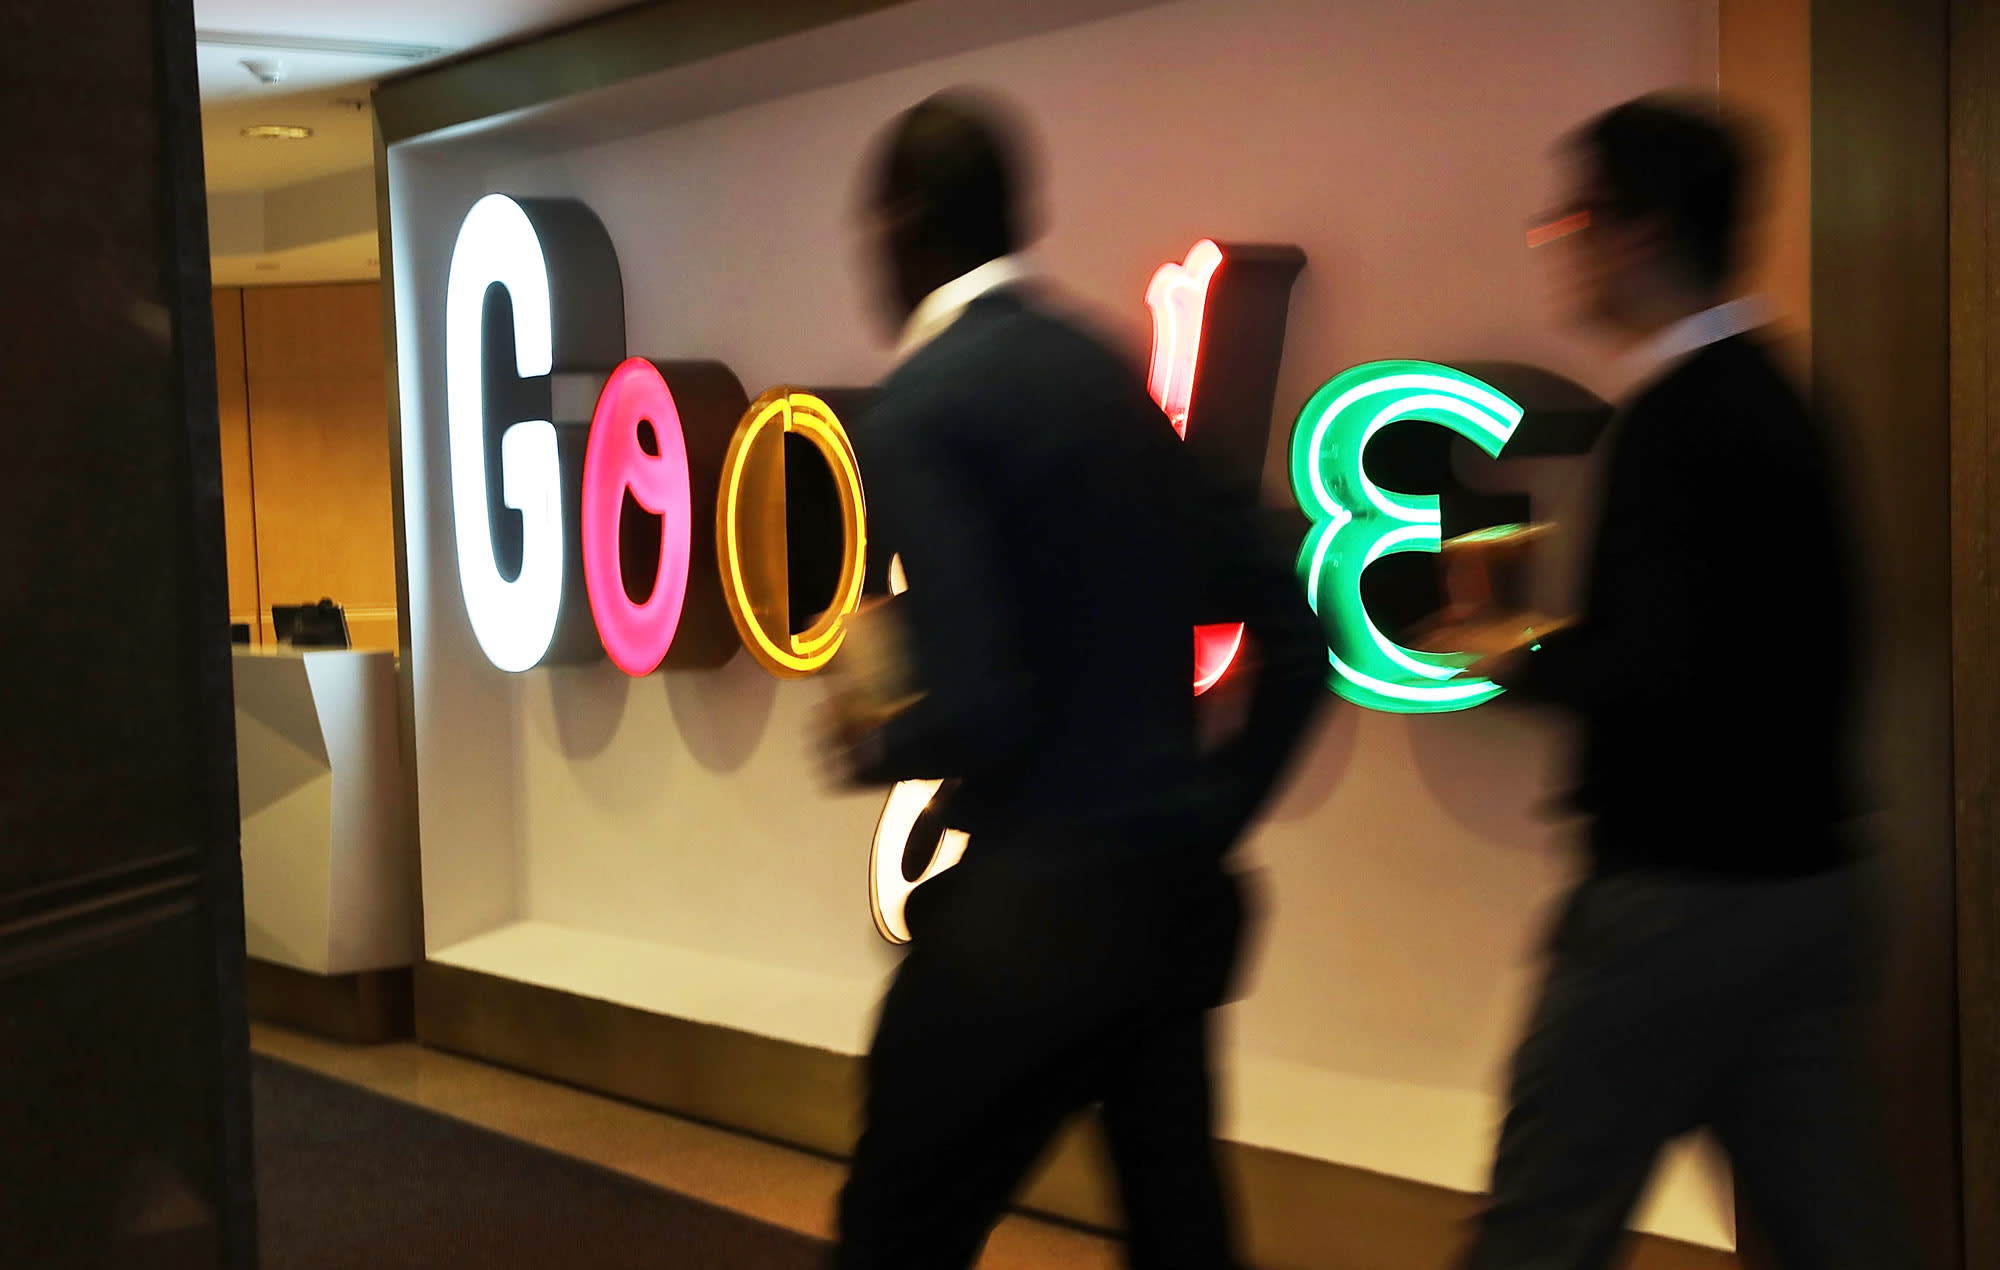 Google restricts travel as coronavirus outbreak spreads and employee in Switzerland tests positive - CNBC